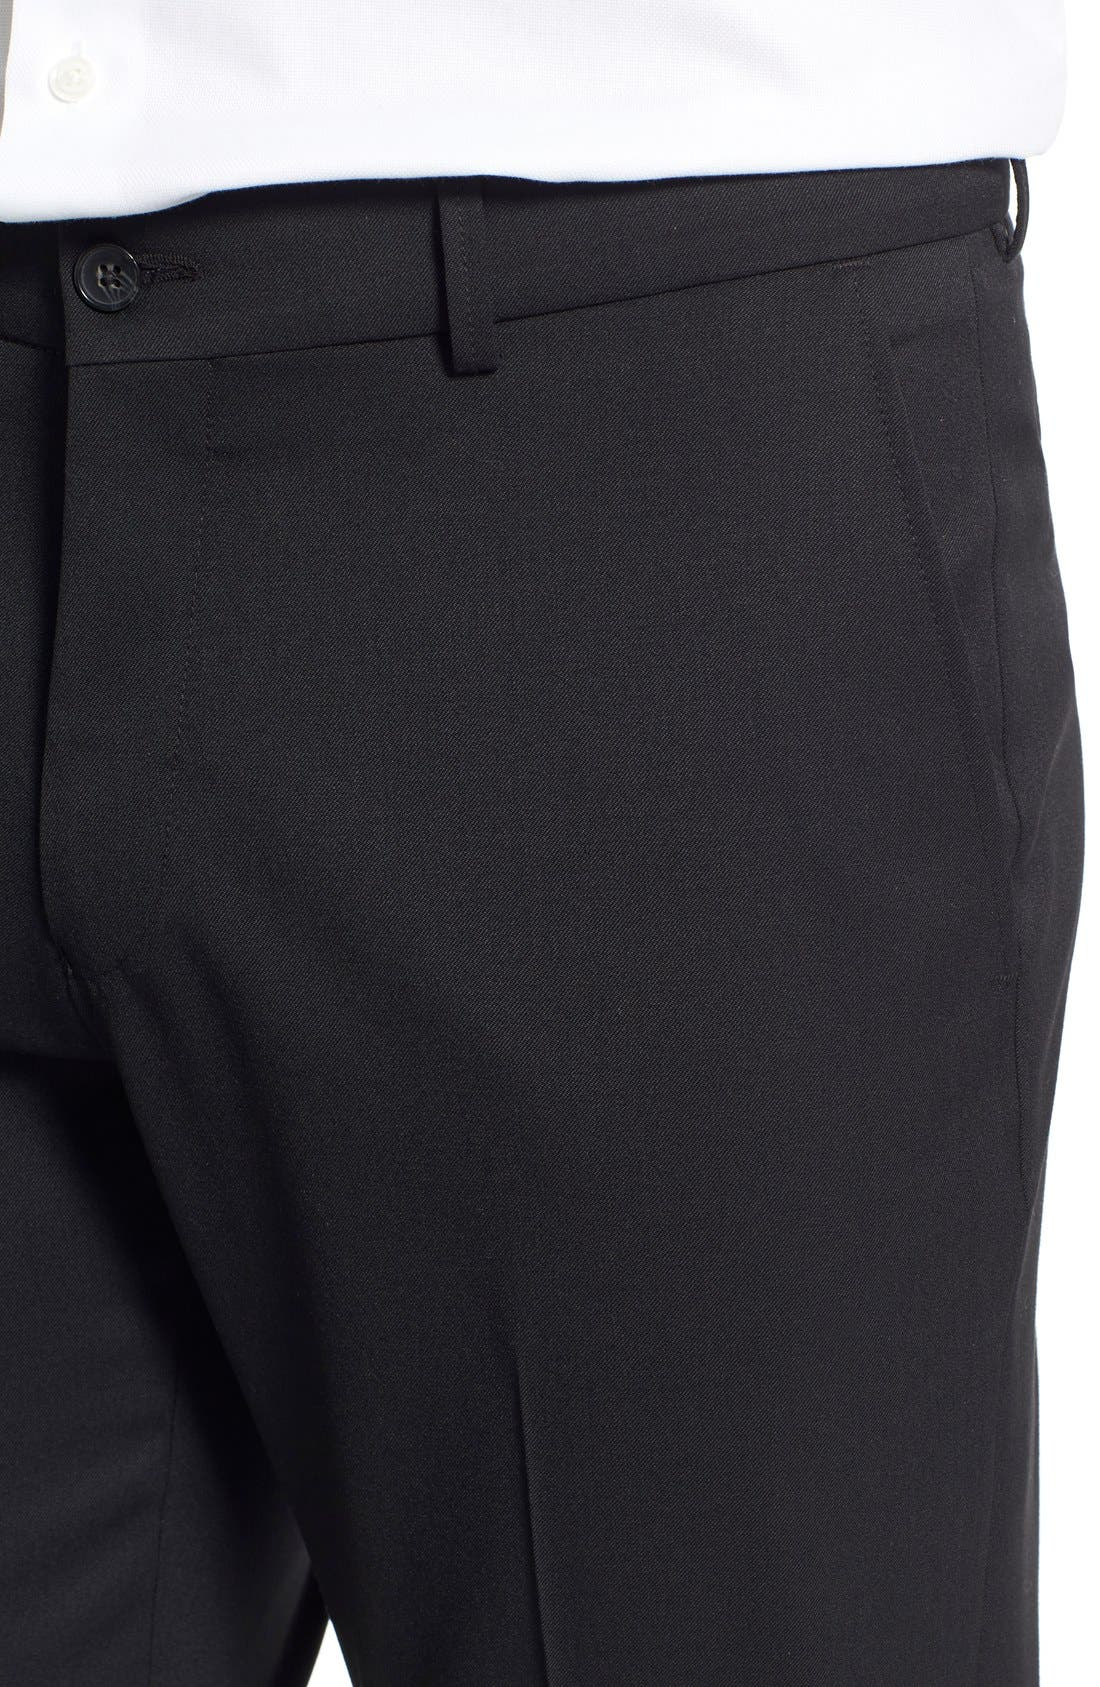 Regular Fit Flat Front Trousers,                             Alternate thumbnail 5, color,                             001